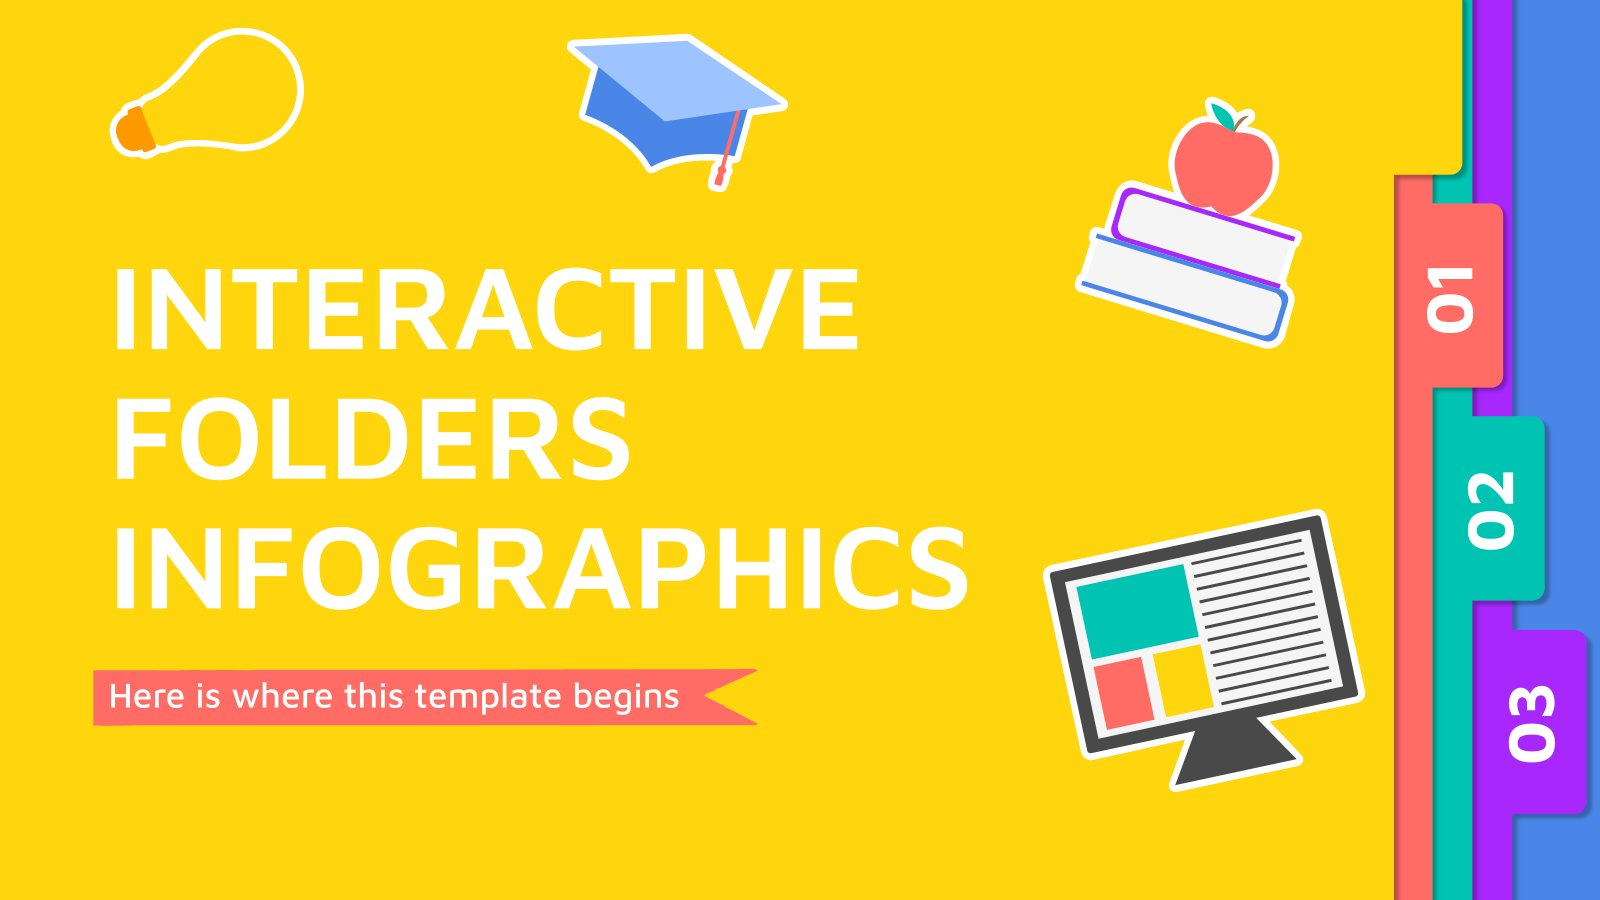 Interactive Folders Infographics presentation template